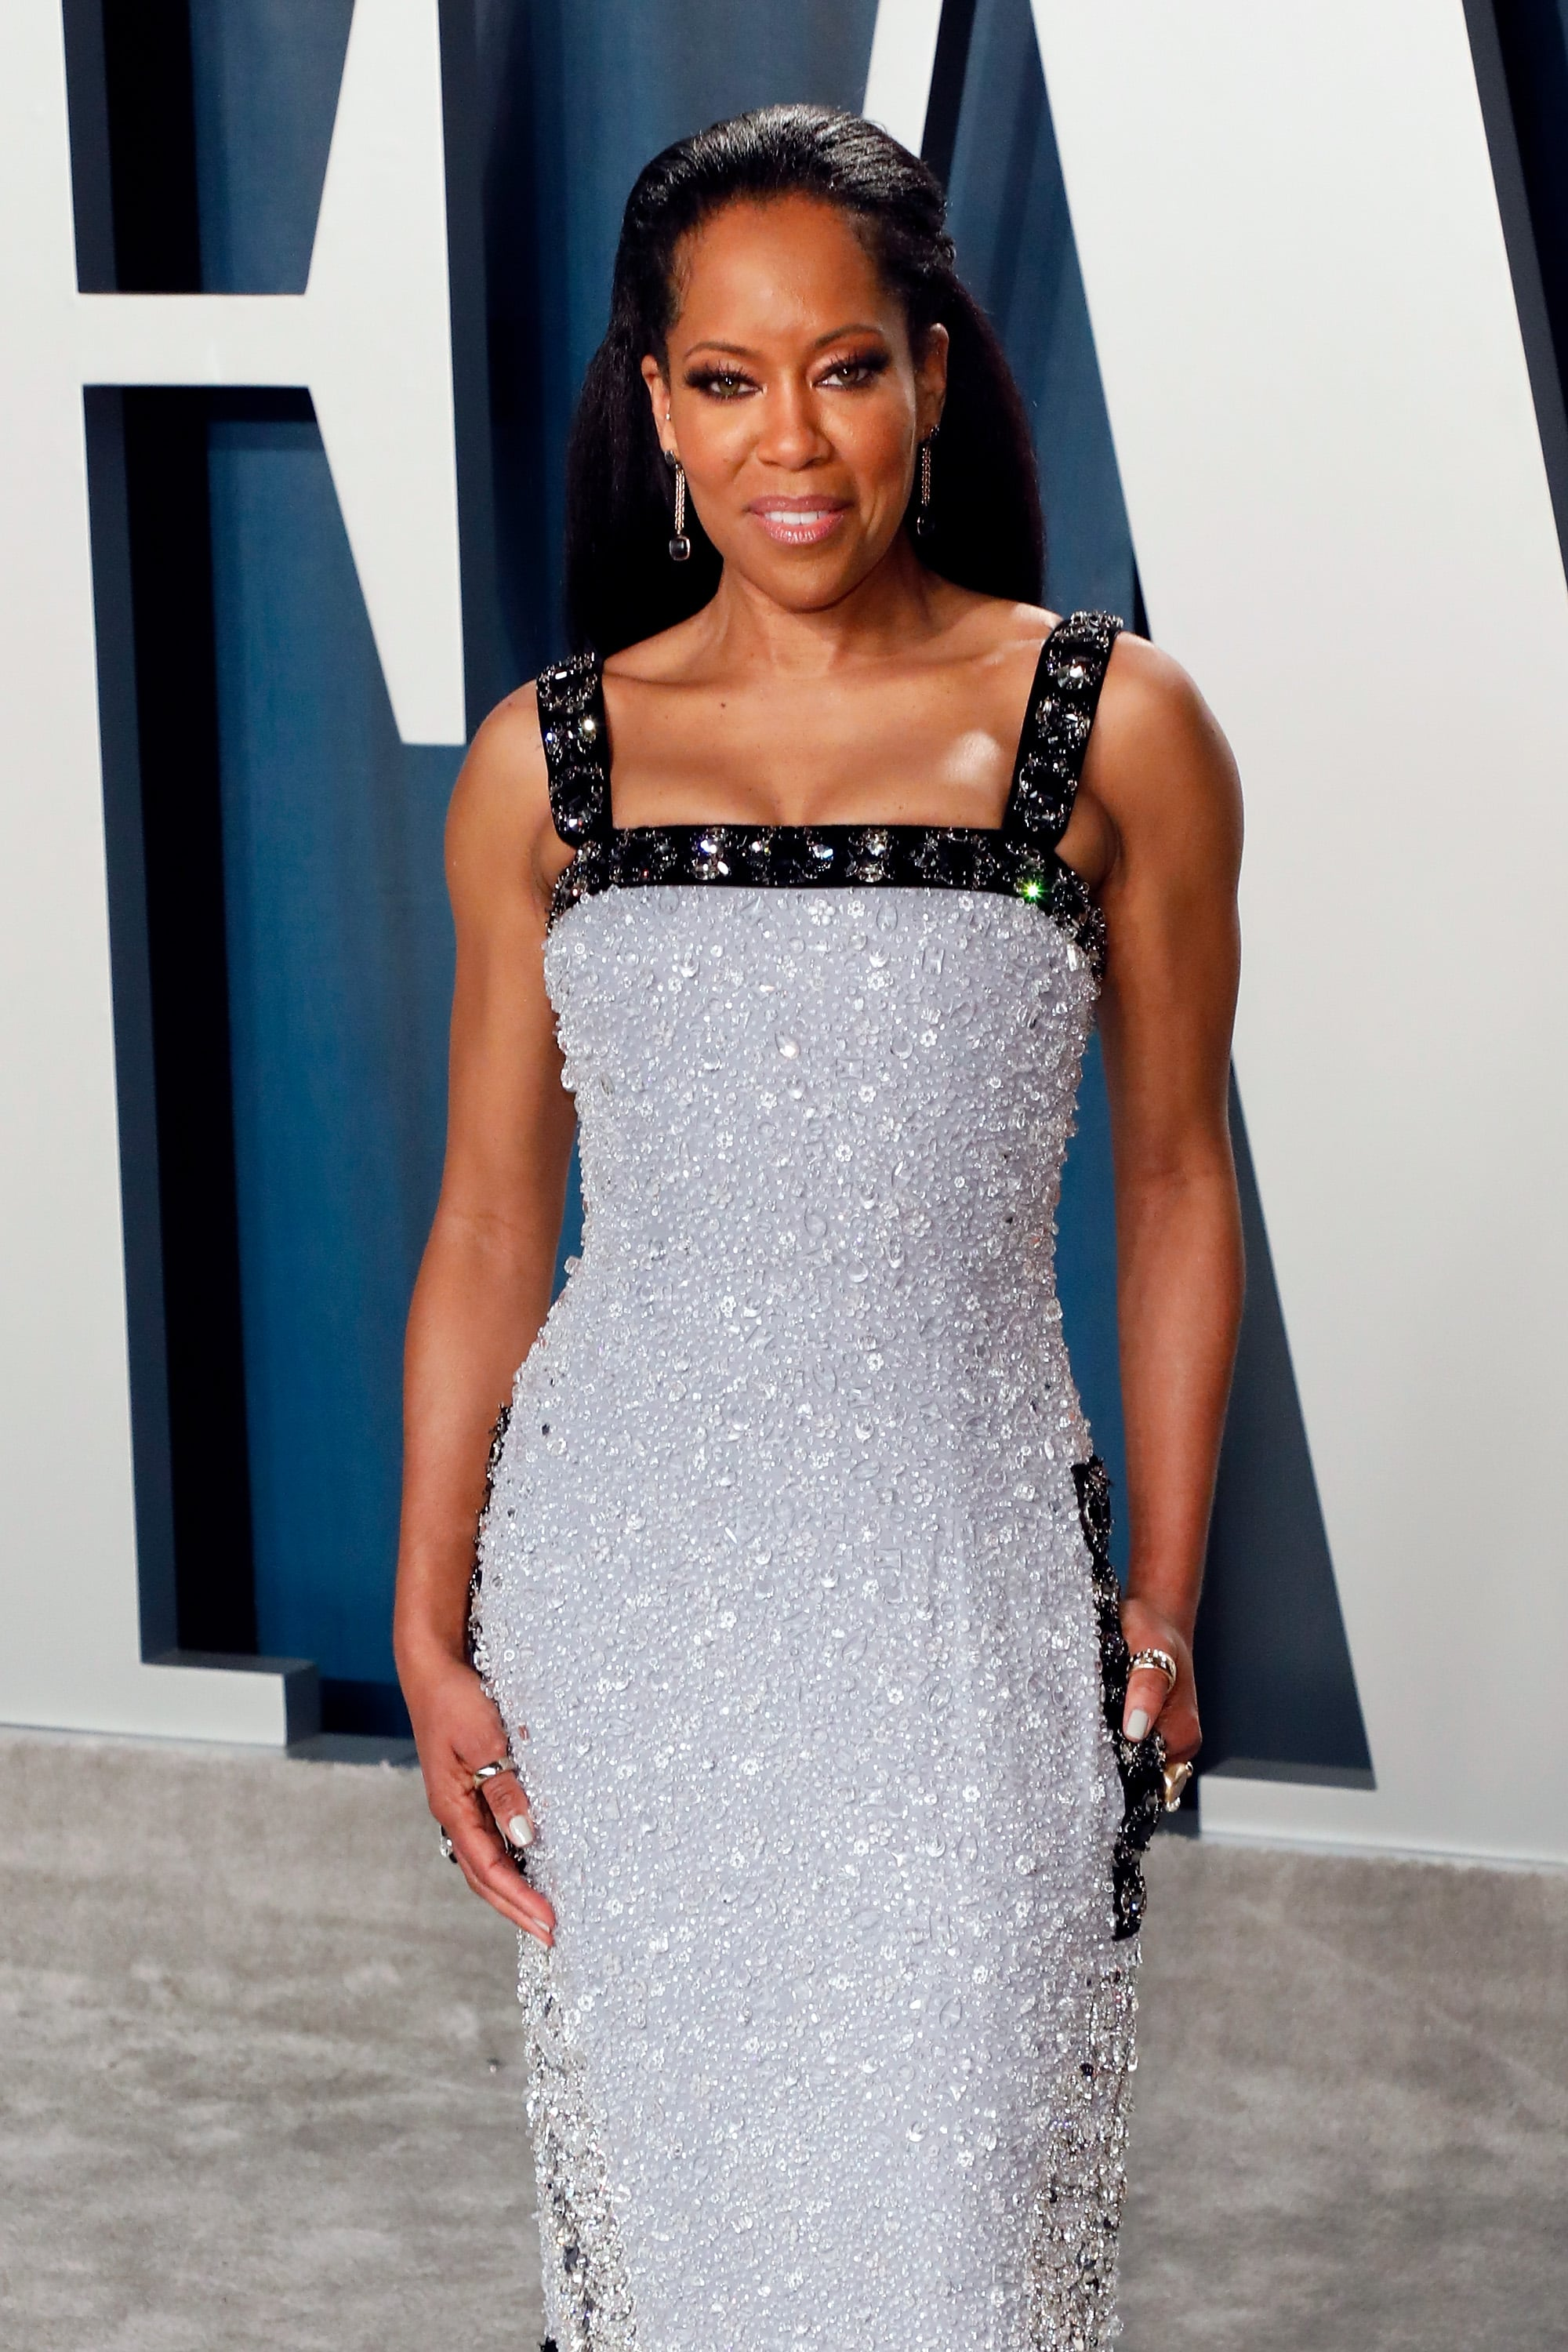 Regina King At The Vanity Fair Oscars Afterparty 2020 See Every Incredible Dress At The Vanity Fair Oscars Afterparty Popsugar Fashion Photo 199